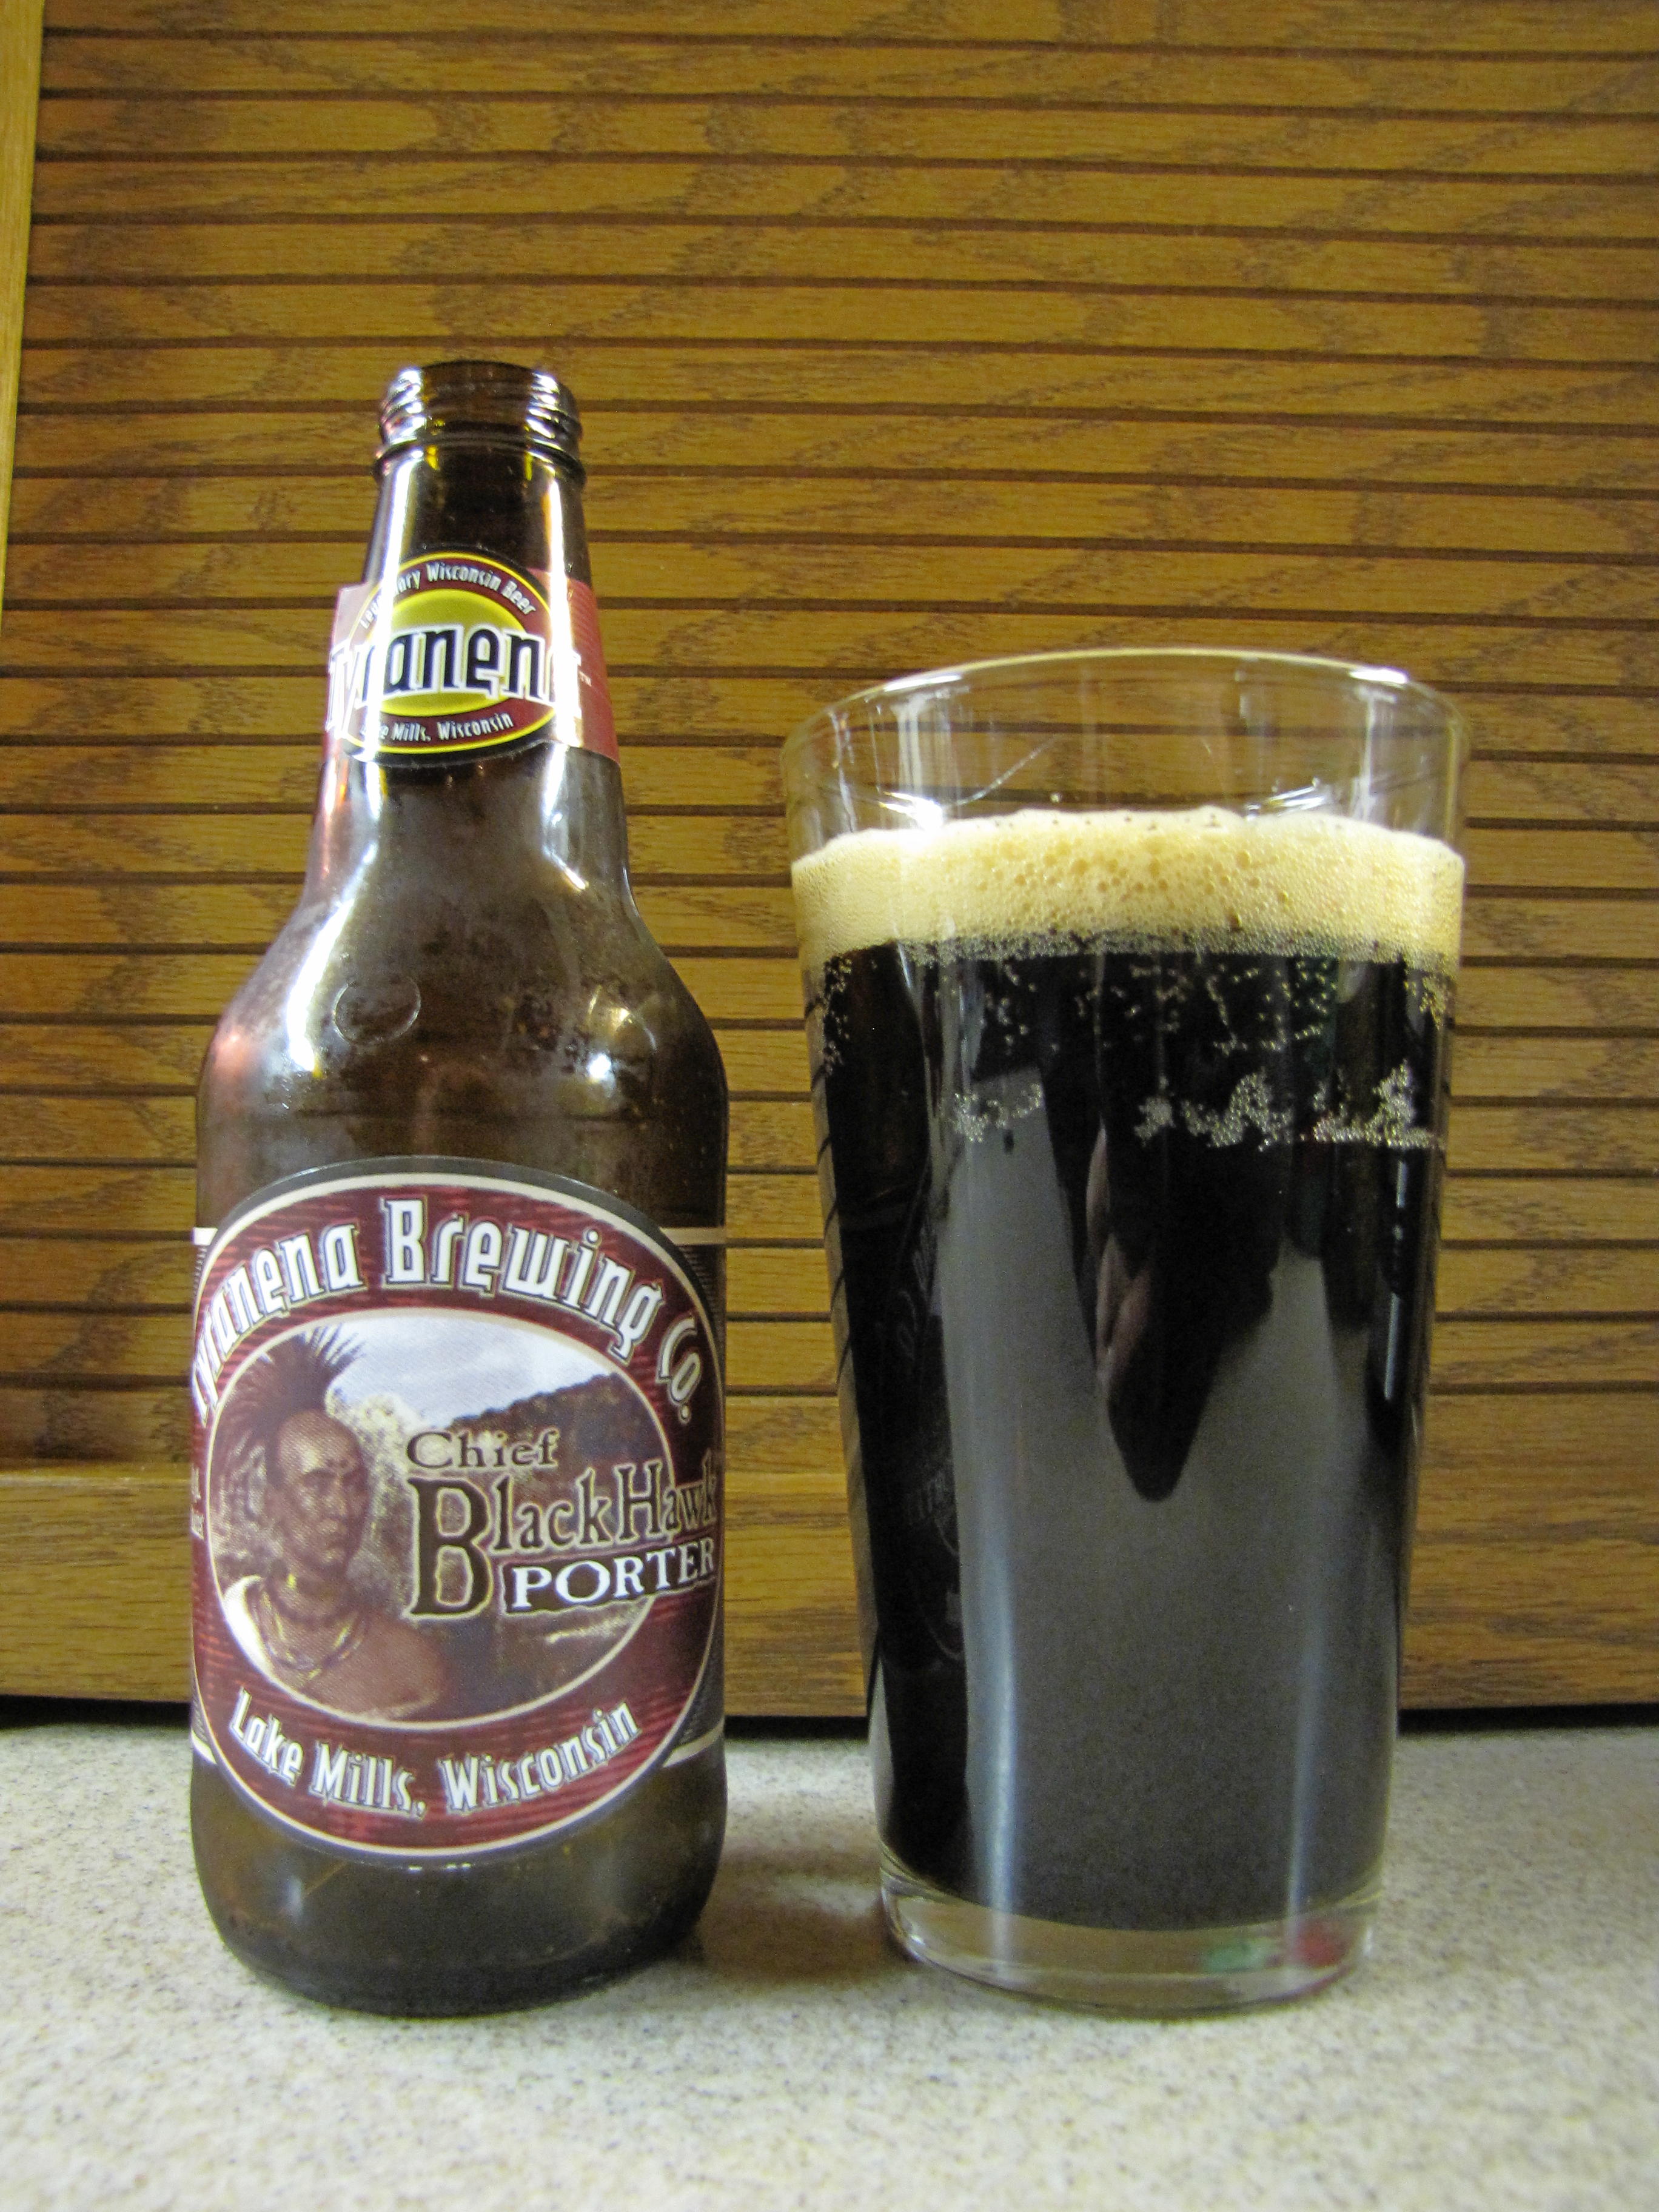 Tyranena Chief BlackHawk Porter